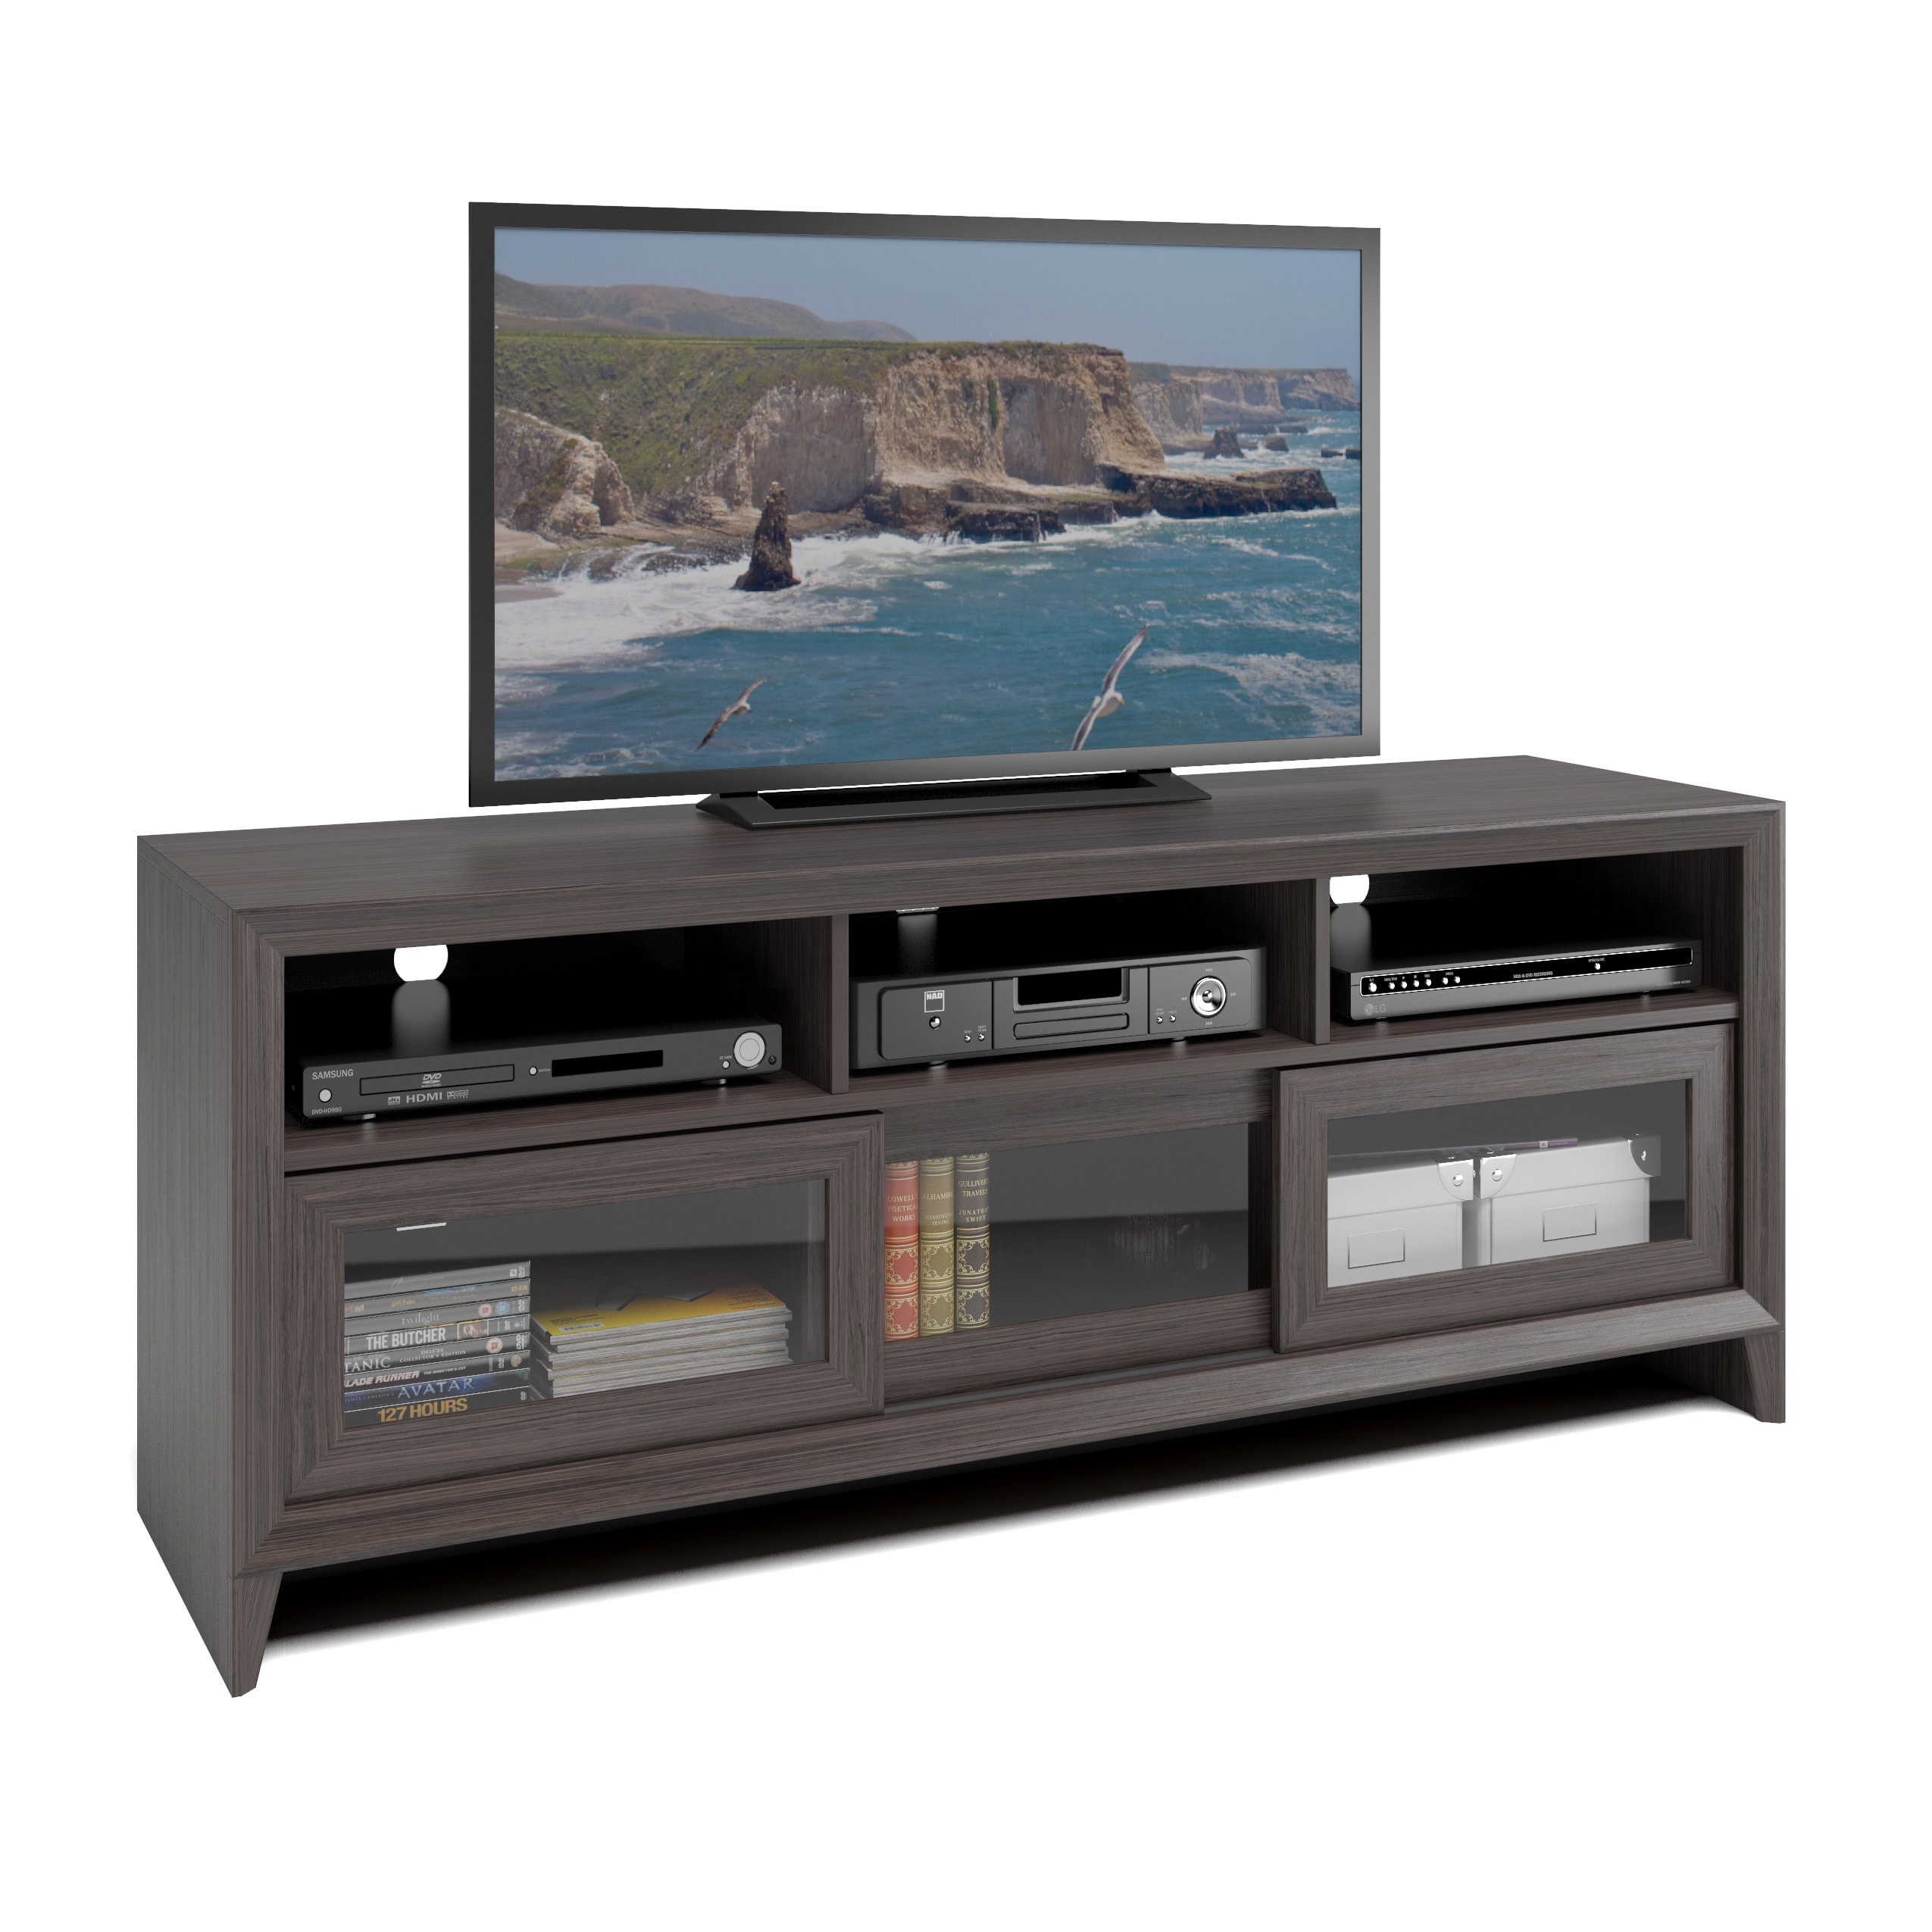 CorLiving TEK-576-B Kansas TV Bench in Modern Wenge Finish for 60 TV (Modern Wenge)